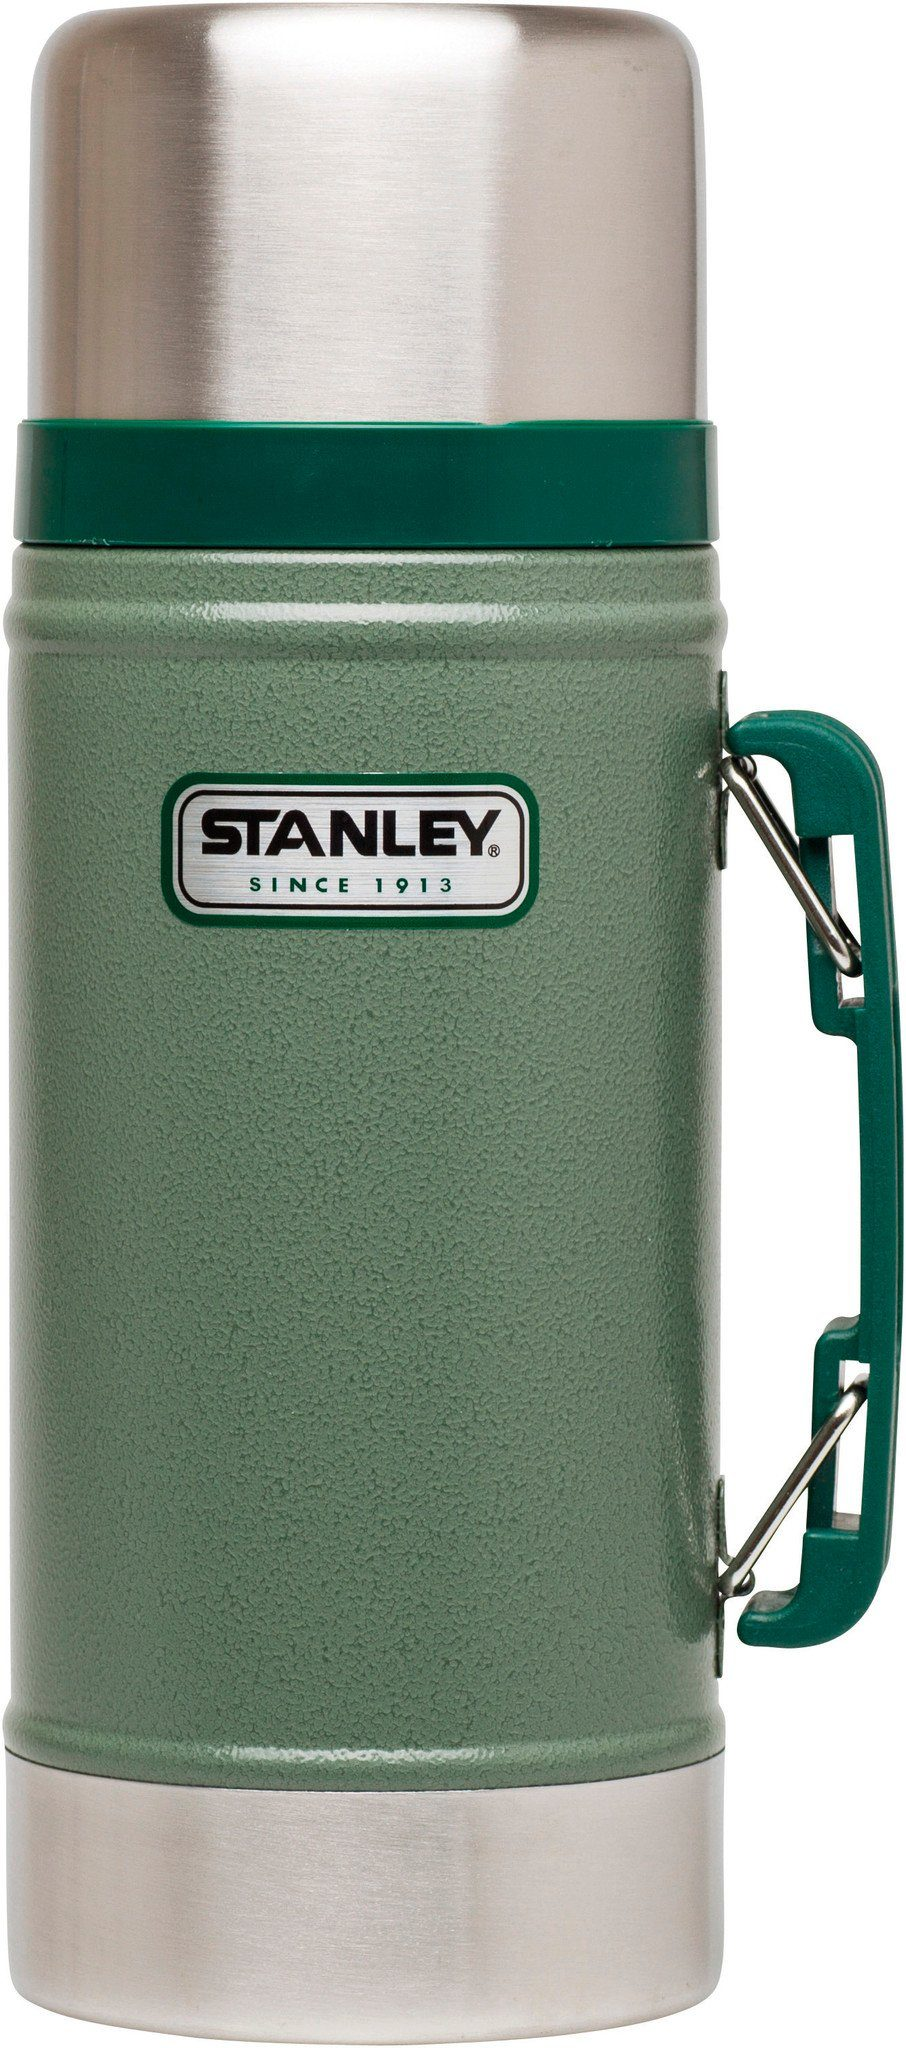 Stanley Trinkflasche »Classic Food-Container 700ml«